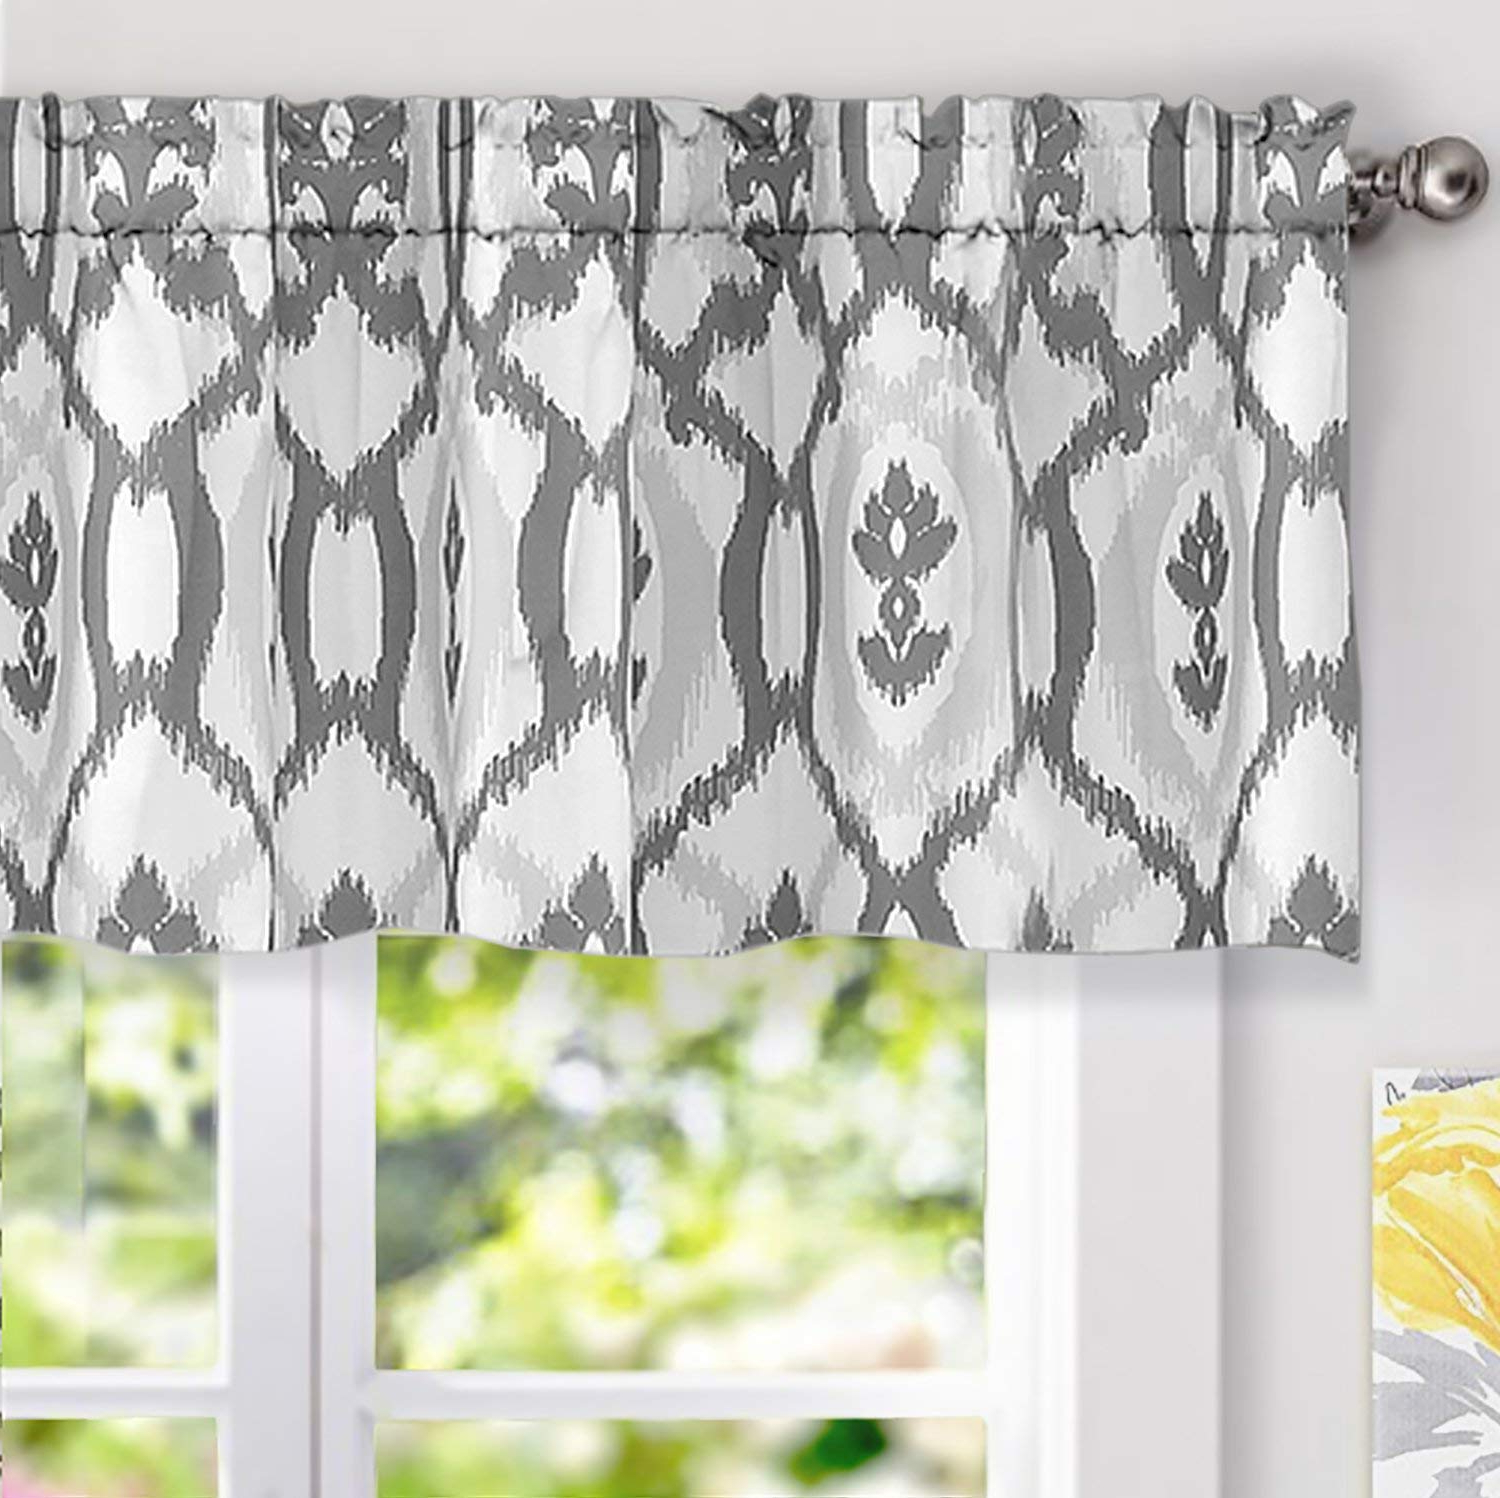 Widely Used Floral Pattern Window Valances With Driftaway Evelyn Ikat Fleur/floral Pattern Window Curtain Valance (View 15 of 20)